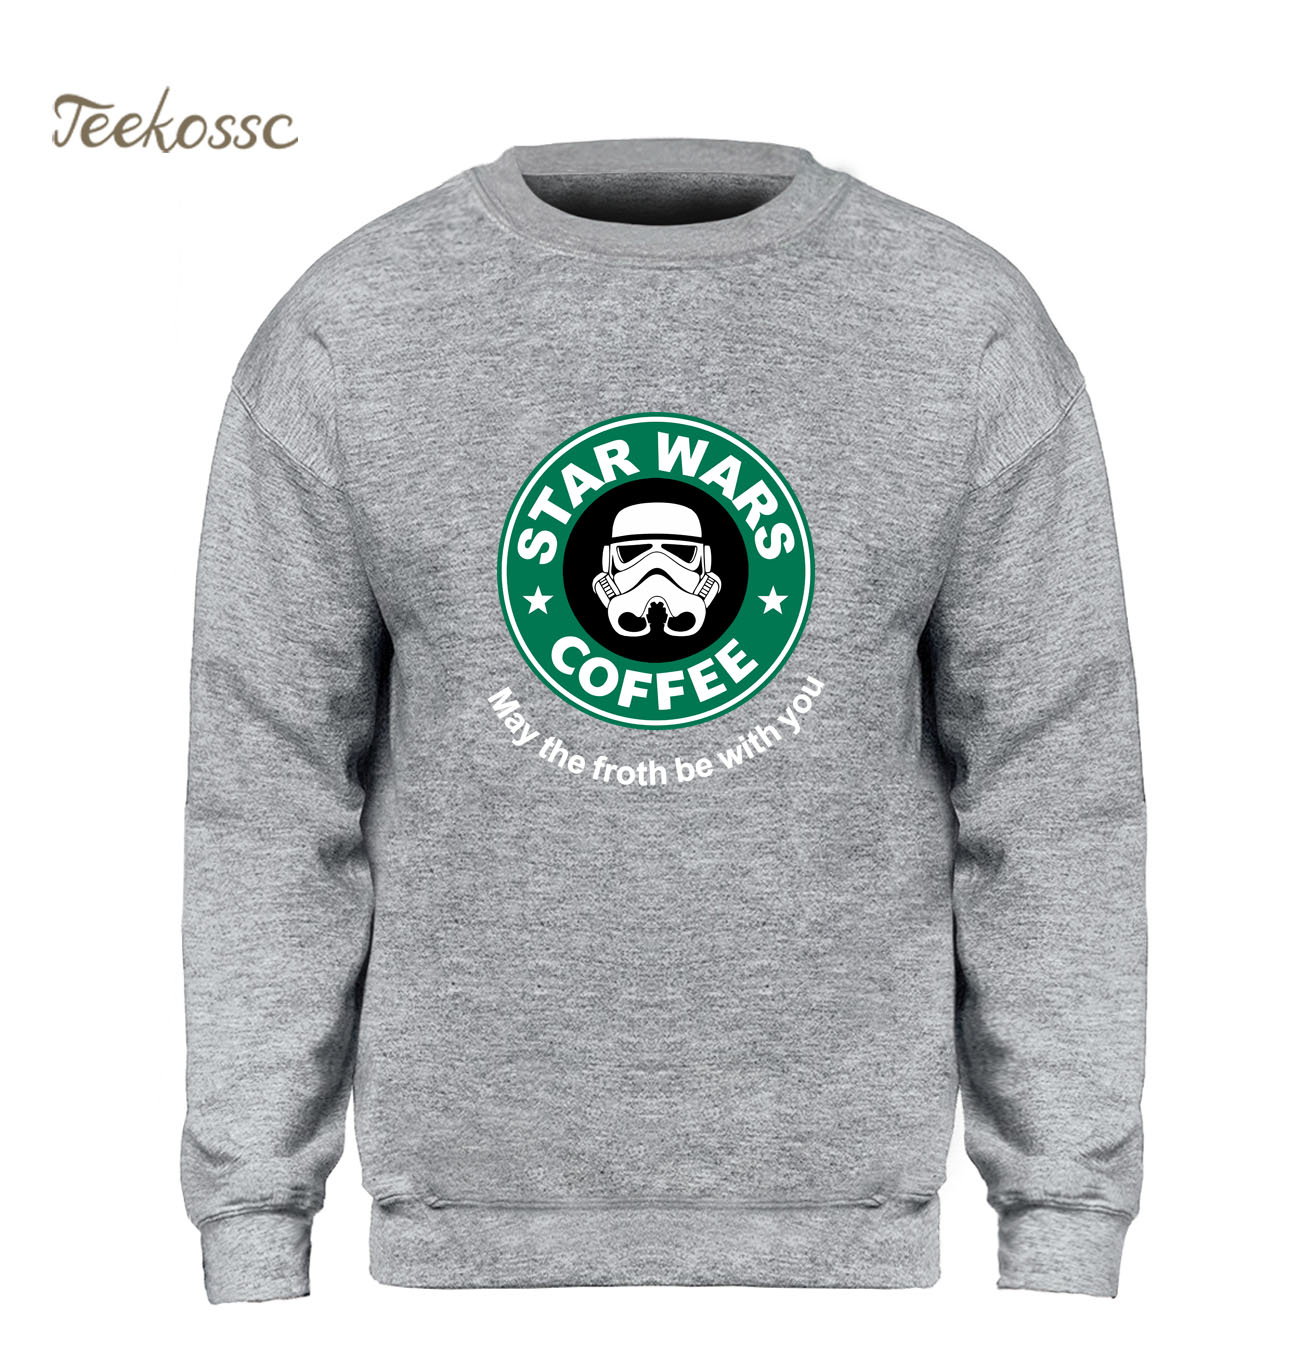 Star Wars Hoodie Men Coffee Sweatshirt May The Froth Be With You Sweatshirts 2018 Winter Autumn Fleece Warm Brand Clothing Mens